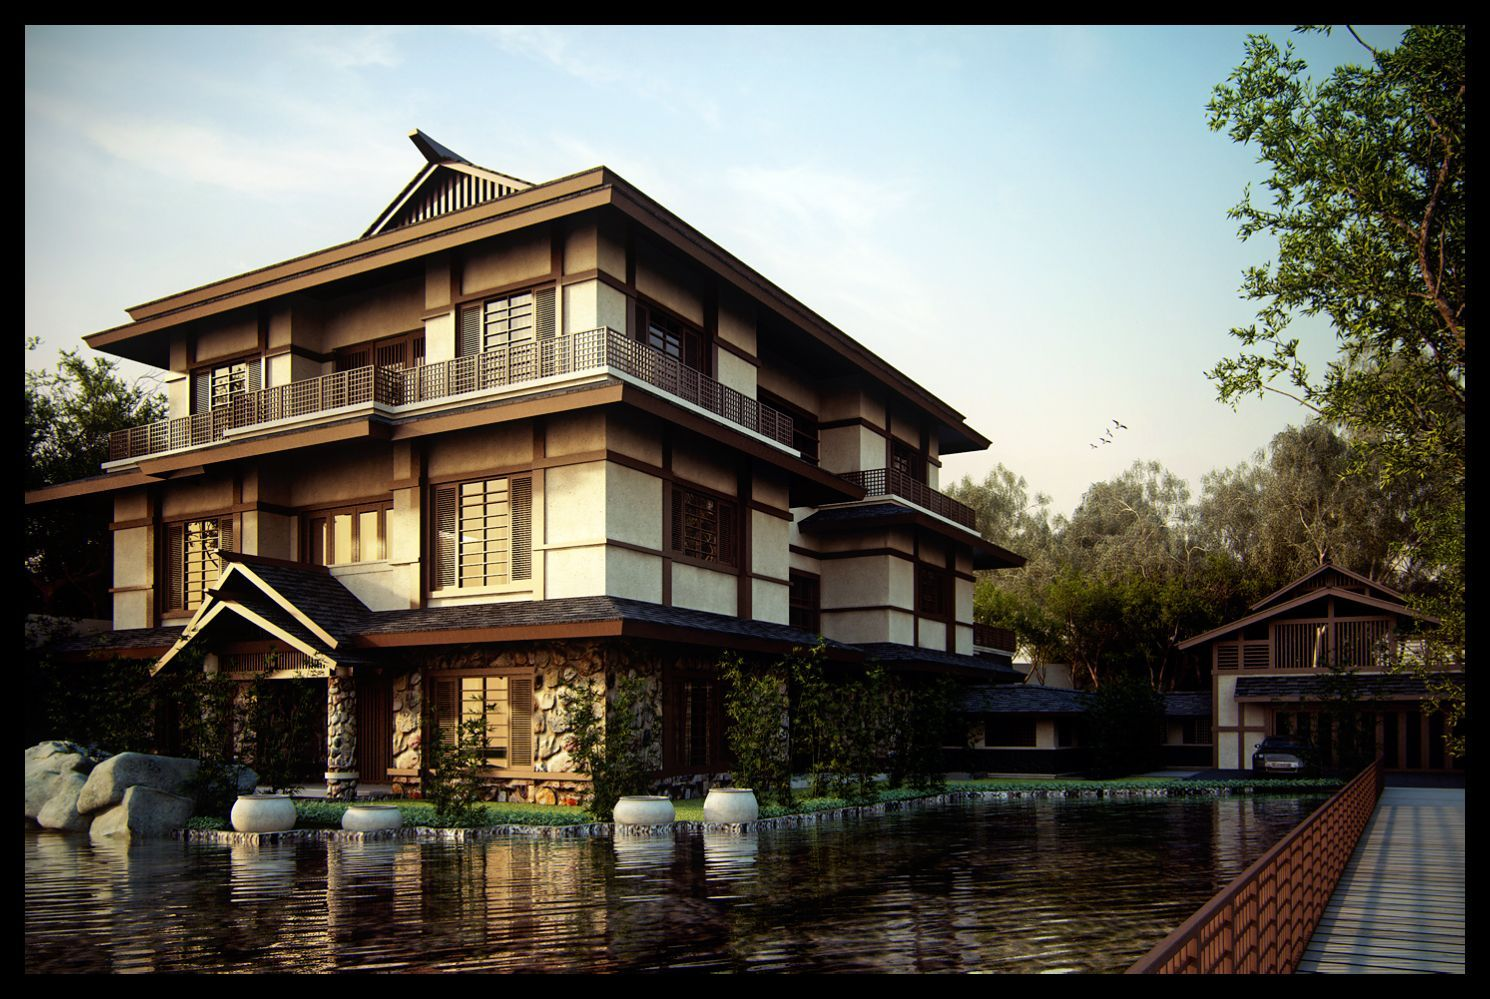 Ordinaire Enchanting How Much Would It Cost To Build A Japanese Style House  Together Wih Shoko Ken A Late Medieval Daime Sukiya Style Japanese Tea  House